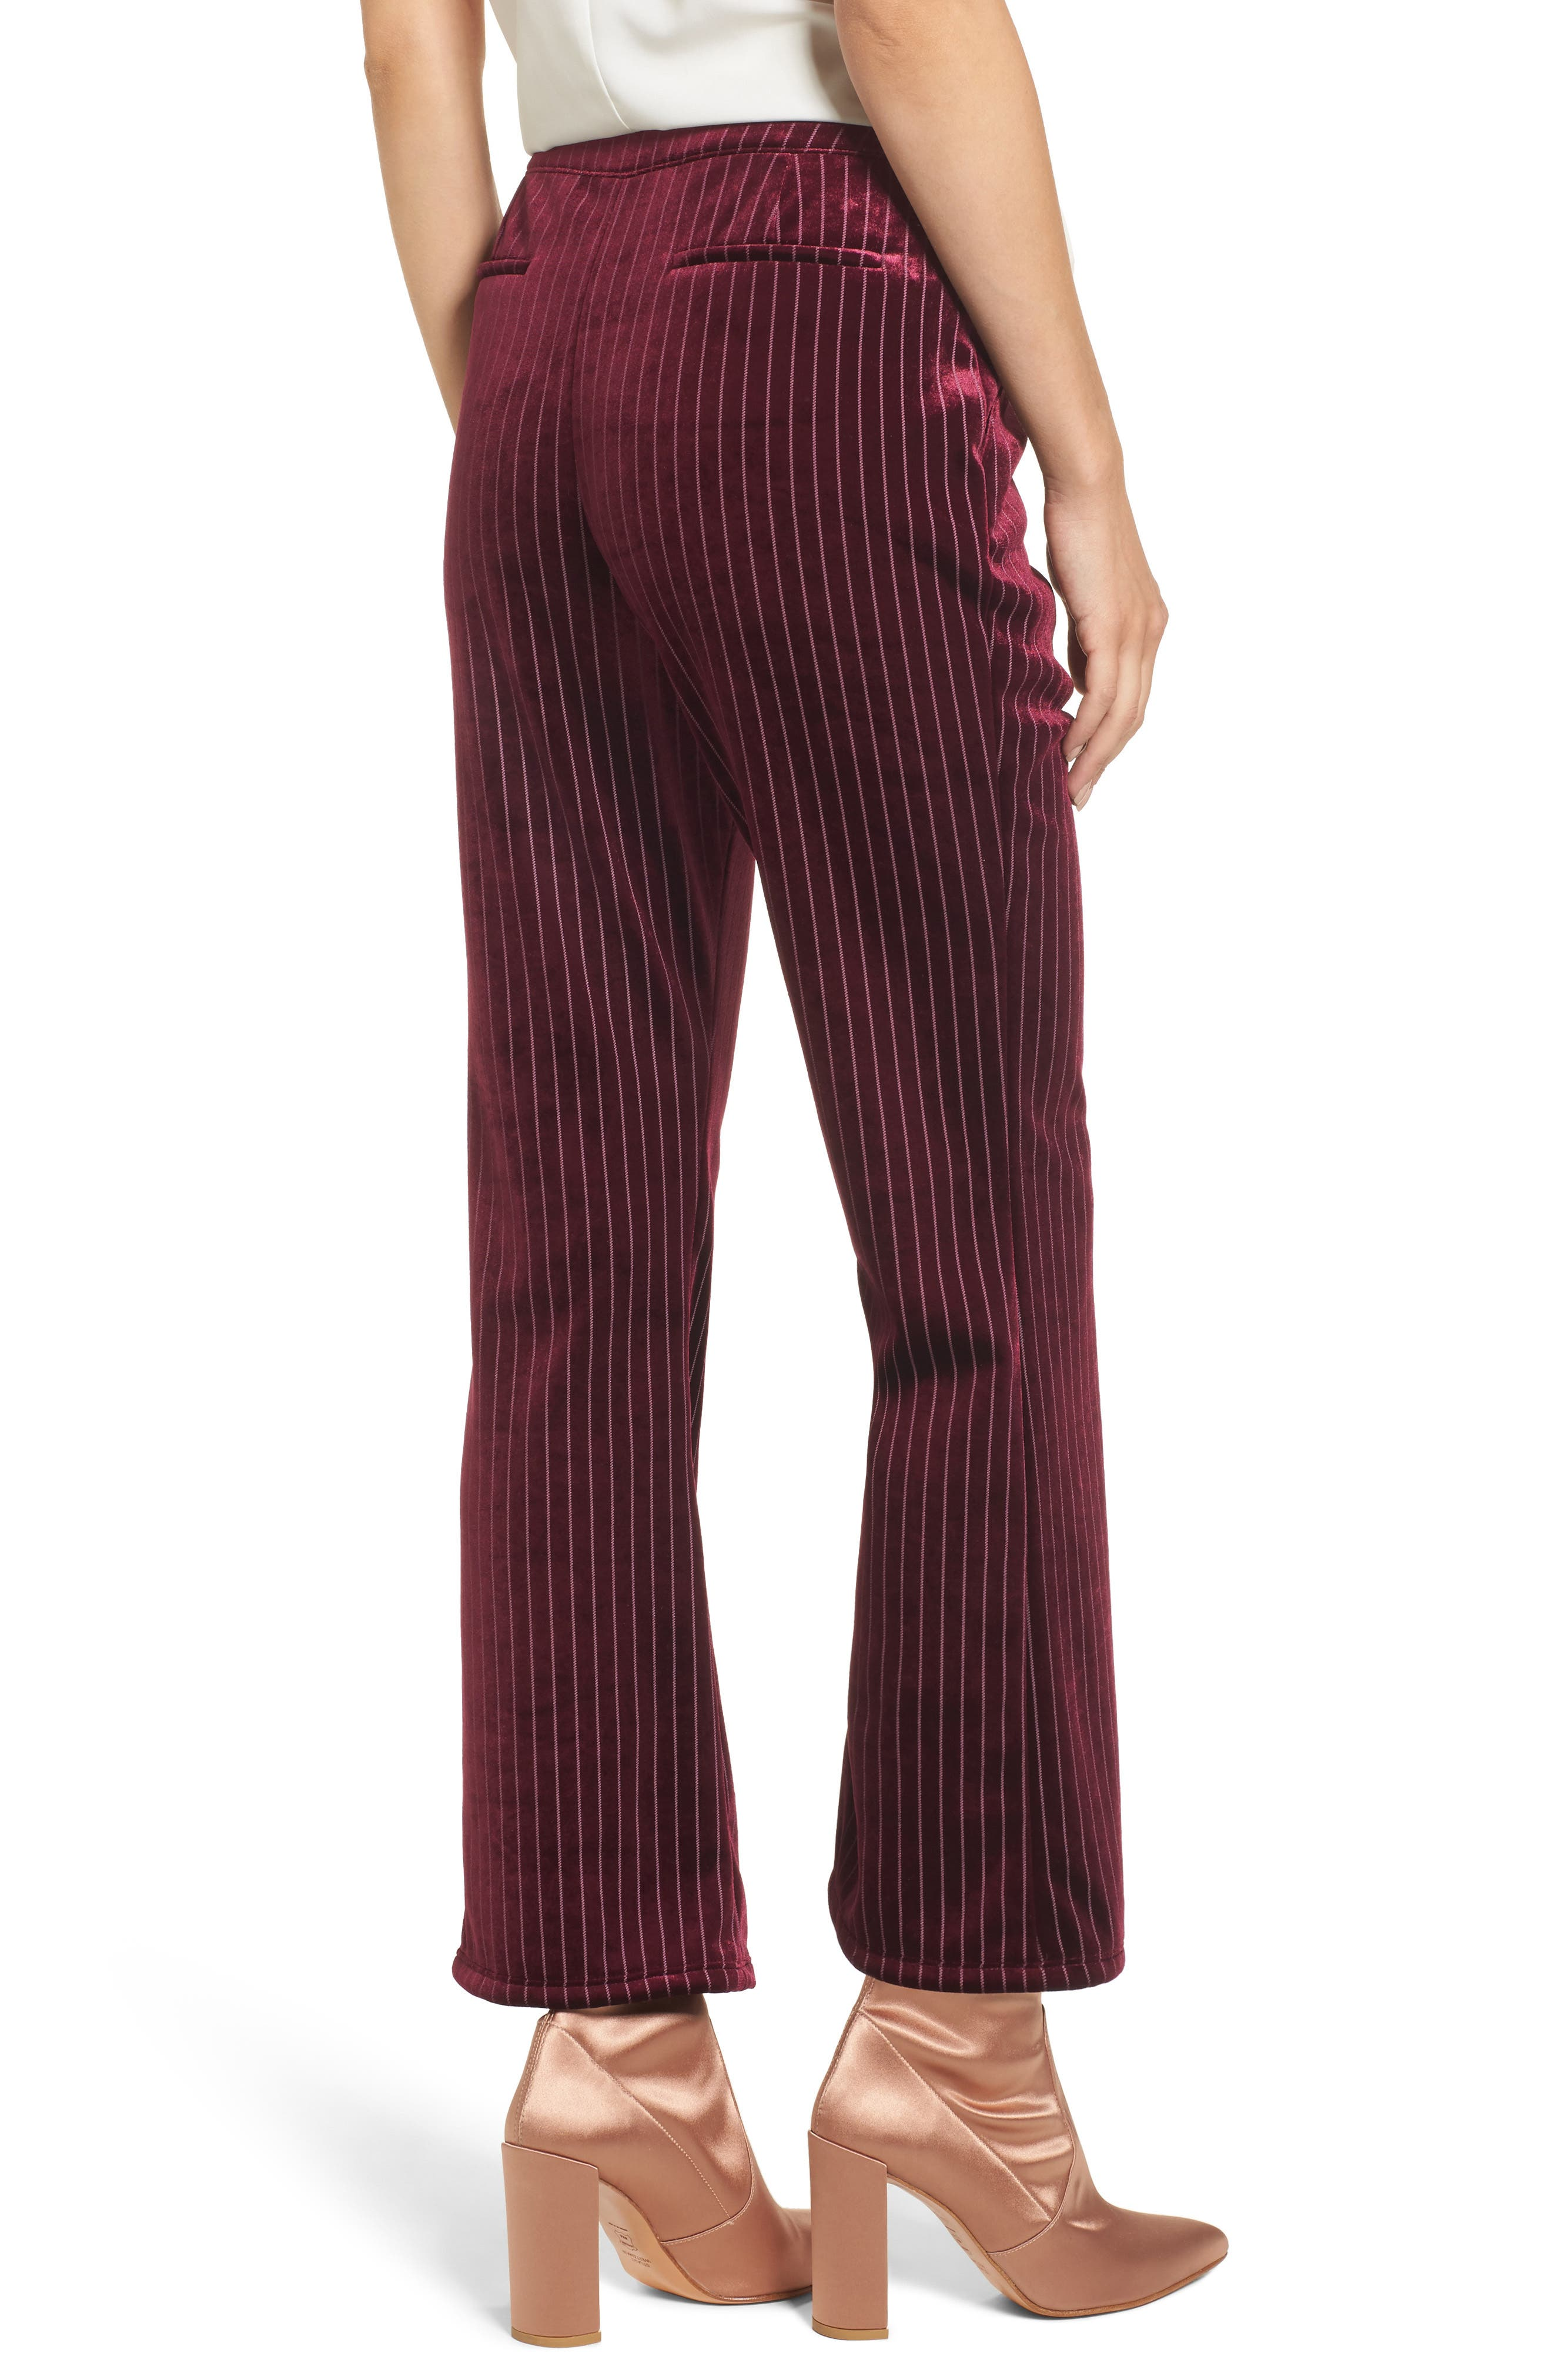 Velour Ankle Trousers,                             Alternate thumbnail 2, color,                             Red Tannin Dotted Stripe